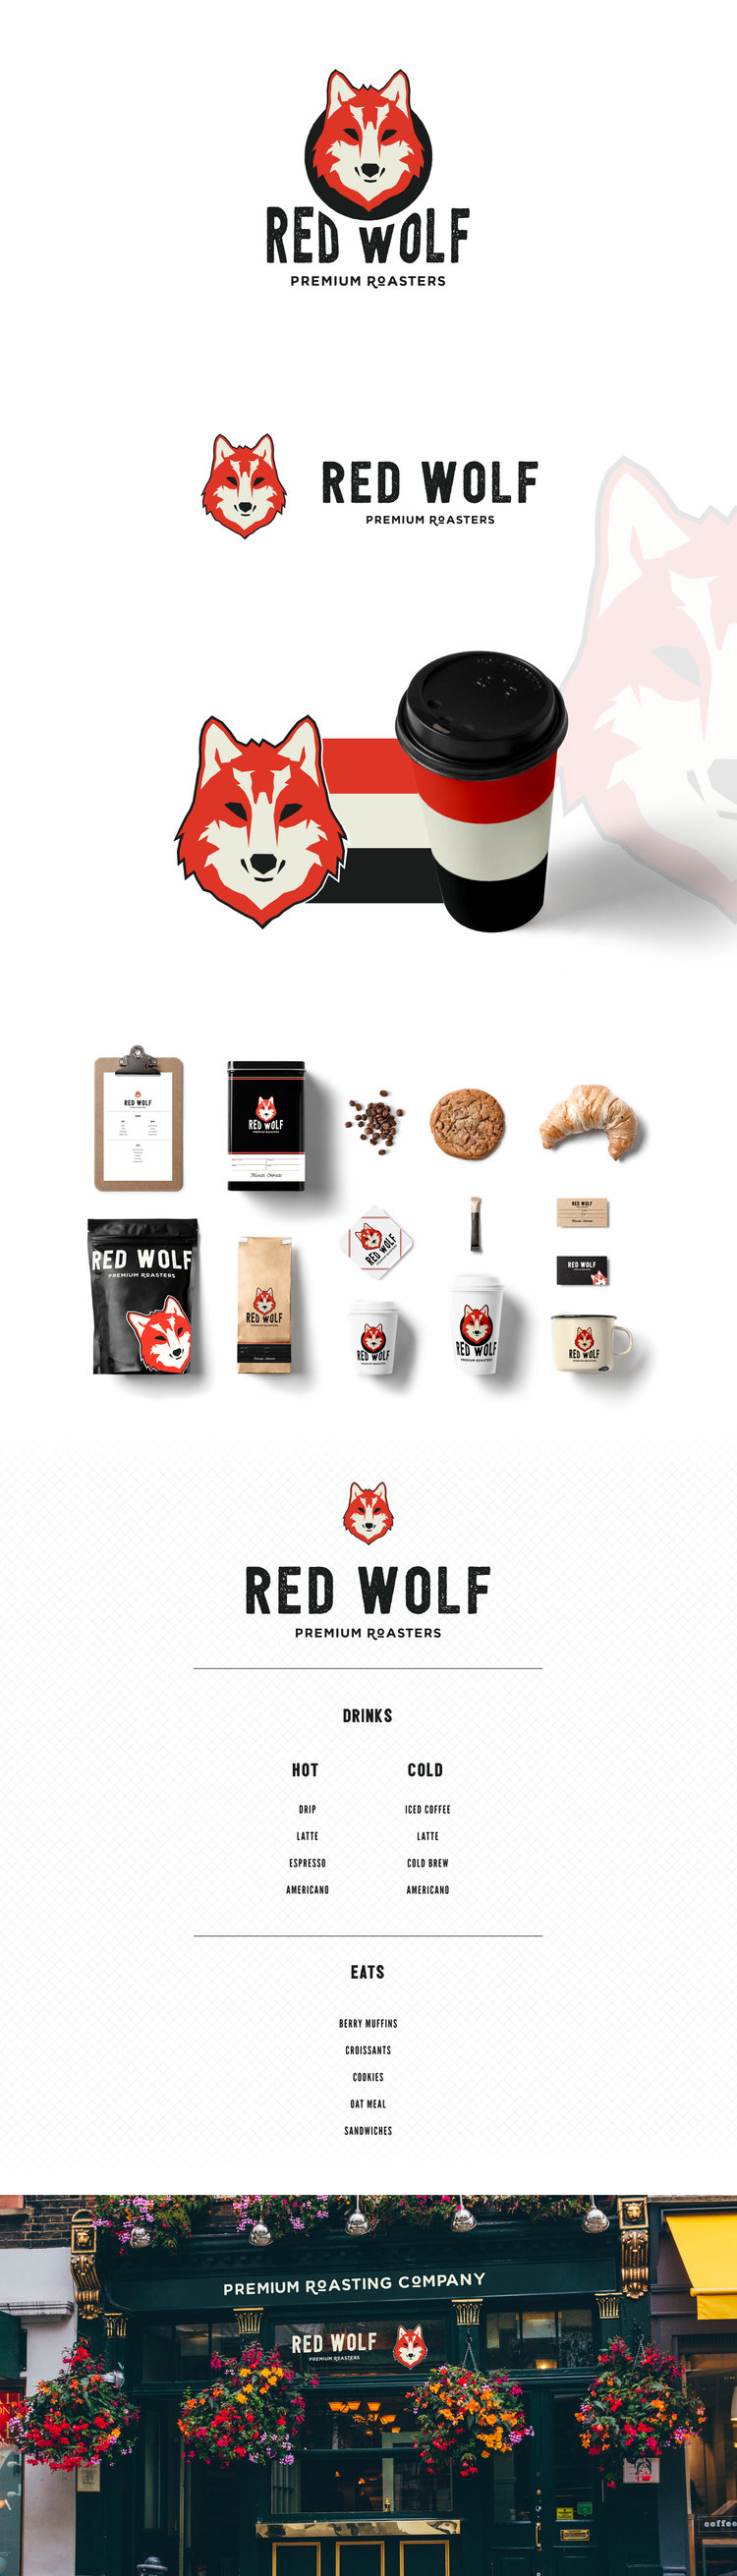 red_wolf_roasters_design_by_bowron.jpg